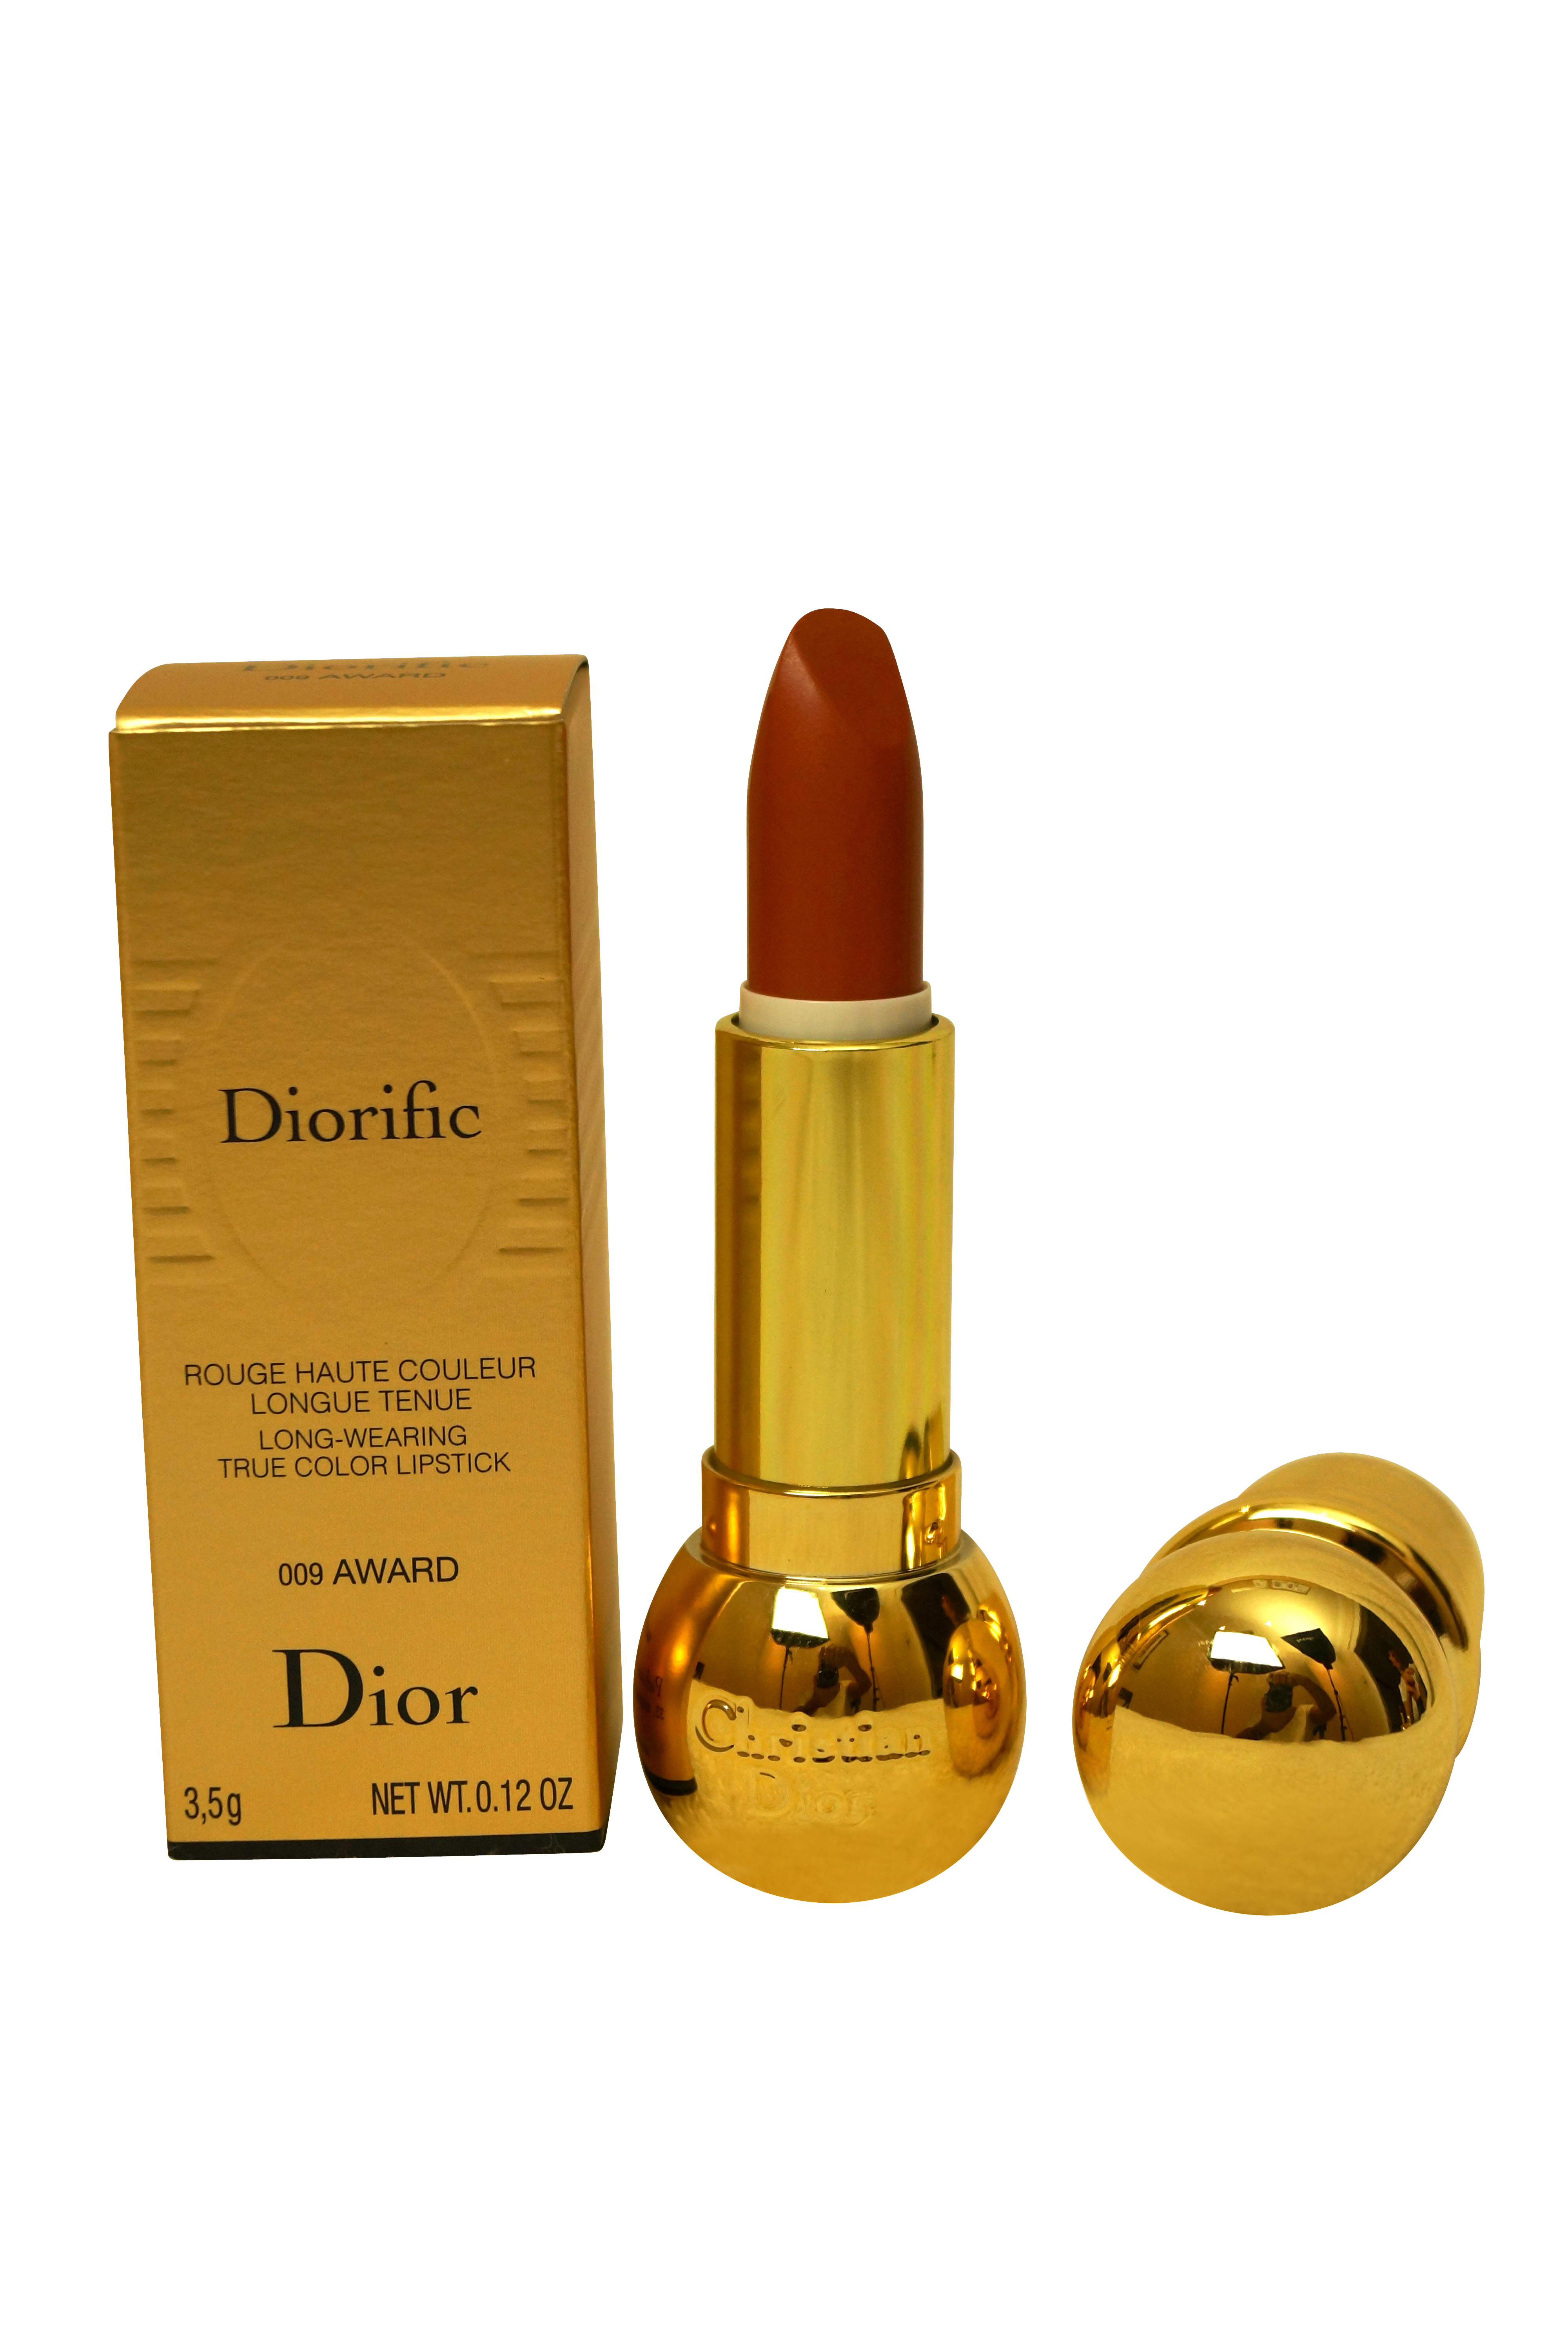 Christian Dior Diorific Long Wearing True Color Lipstick 009 Award at Sears.com